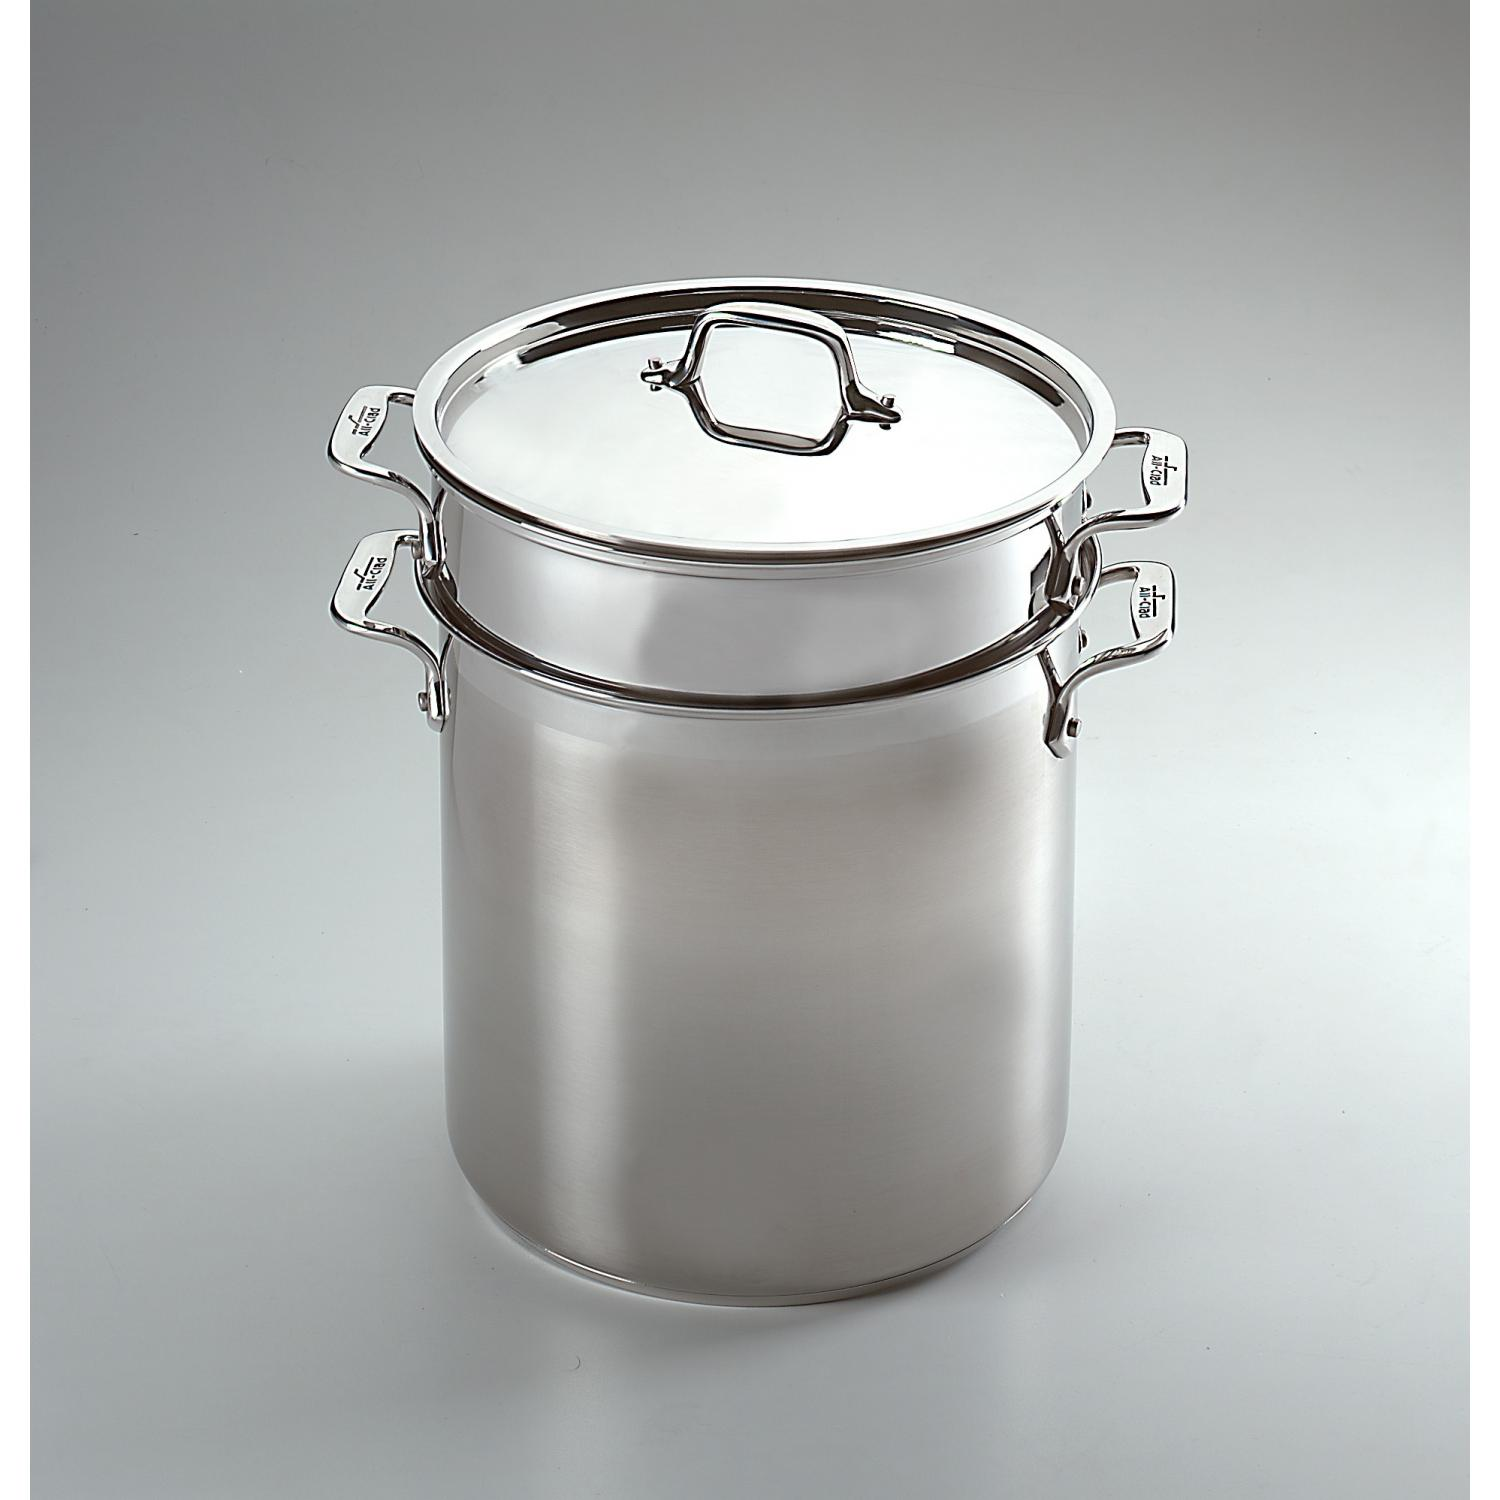 All-Clad Stainless 12-Quart Multi-Cooker